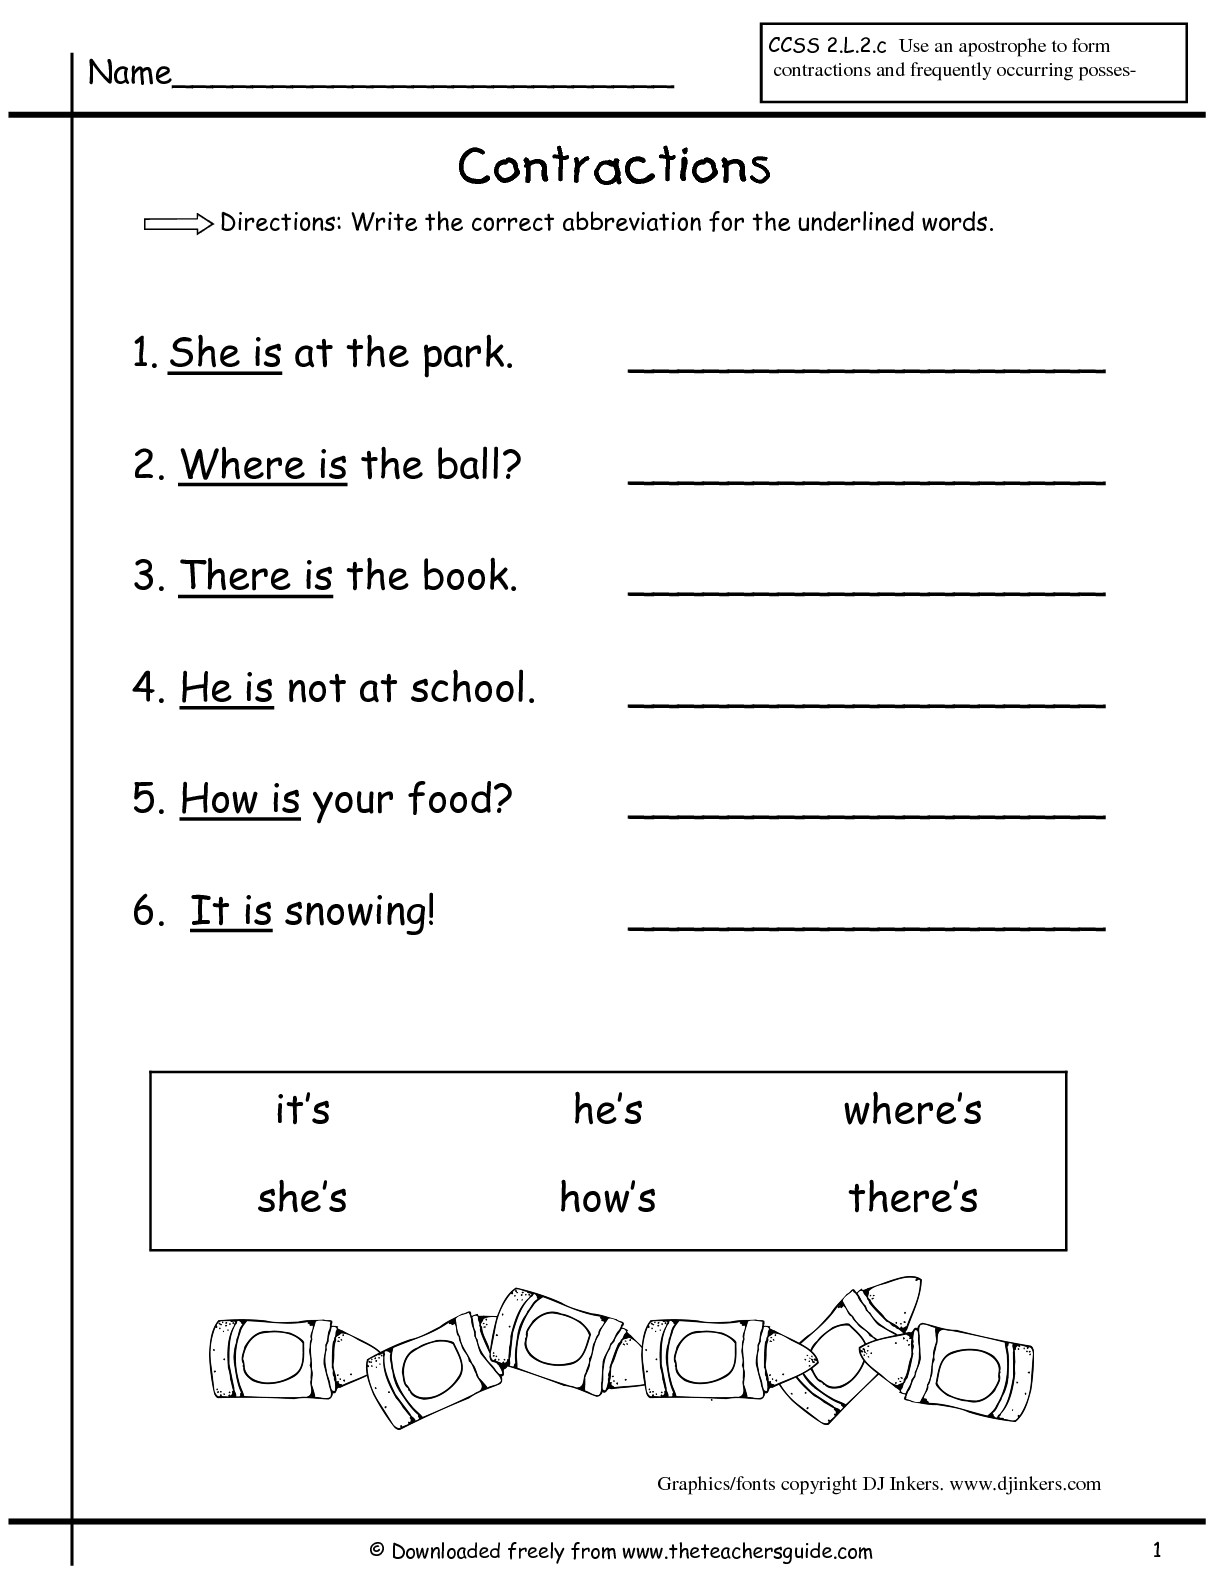 Printables Contraction Worksheets For First Grade wonders first grade unit two week printouts contractions worksheet